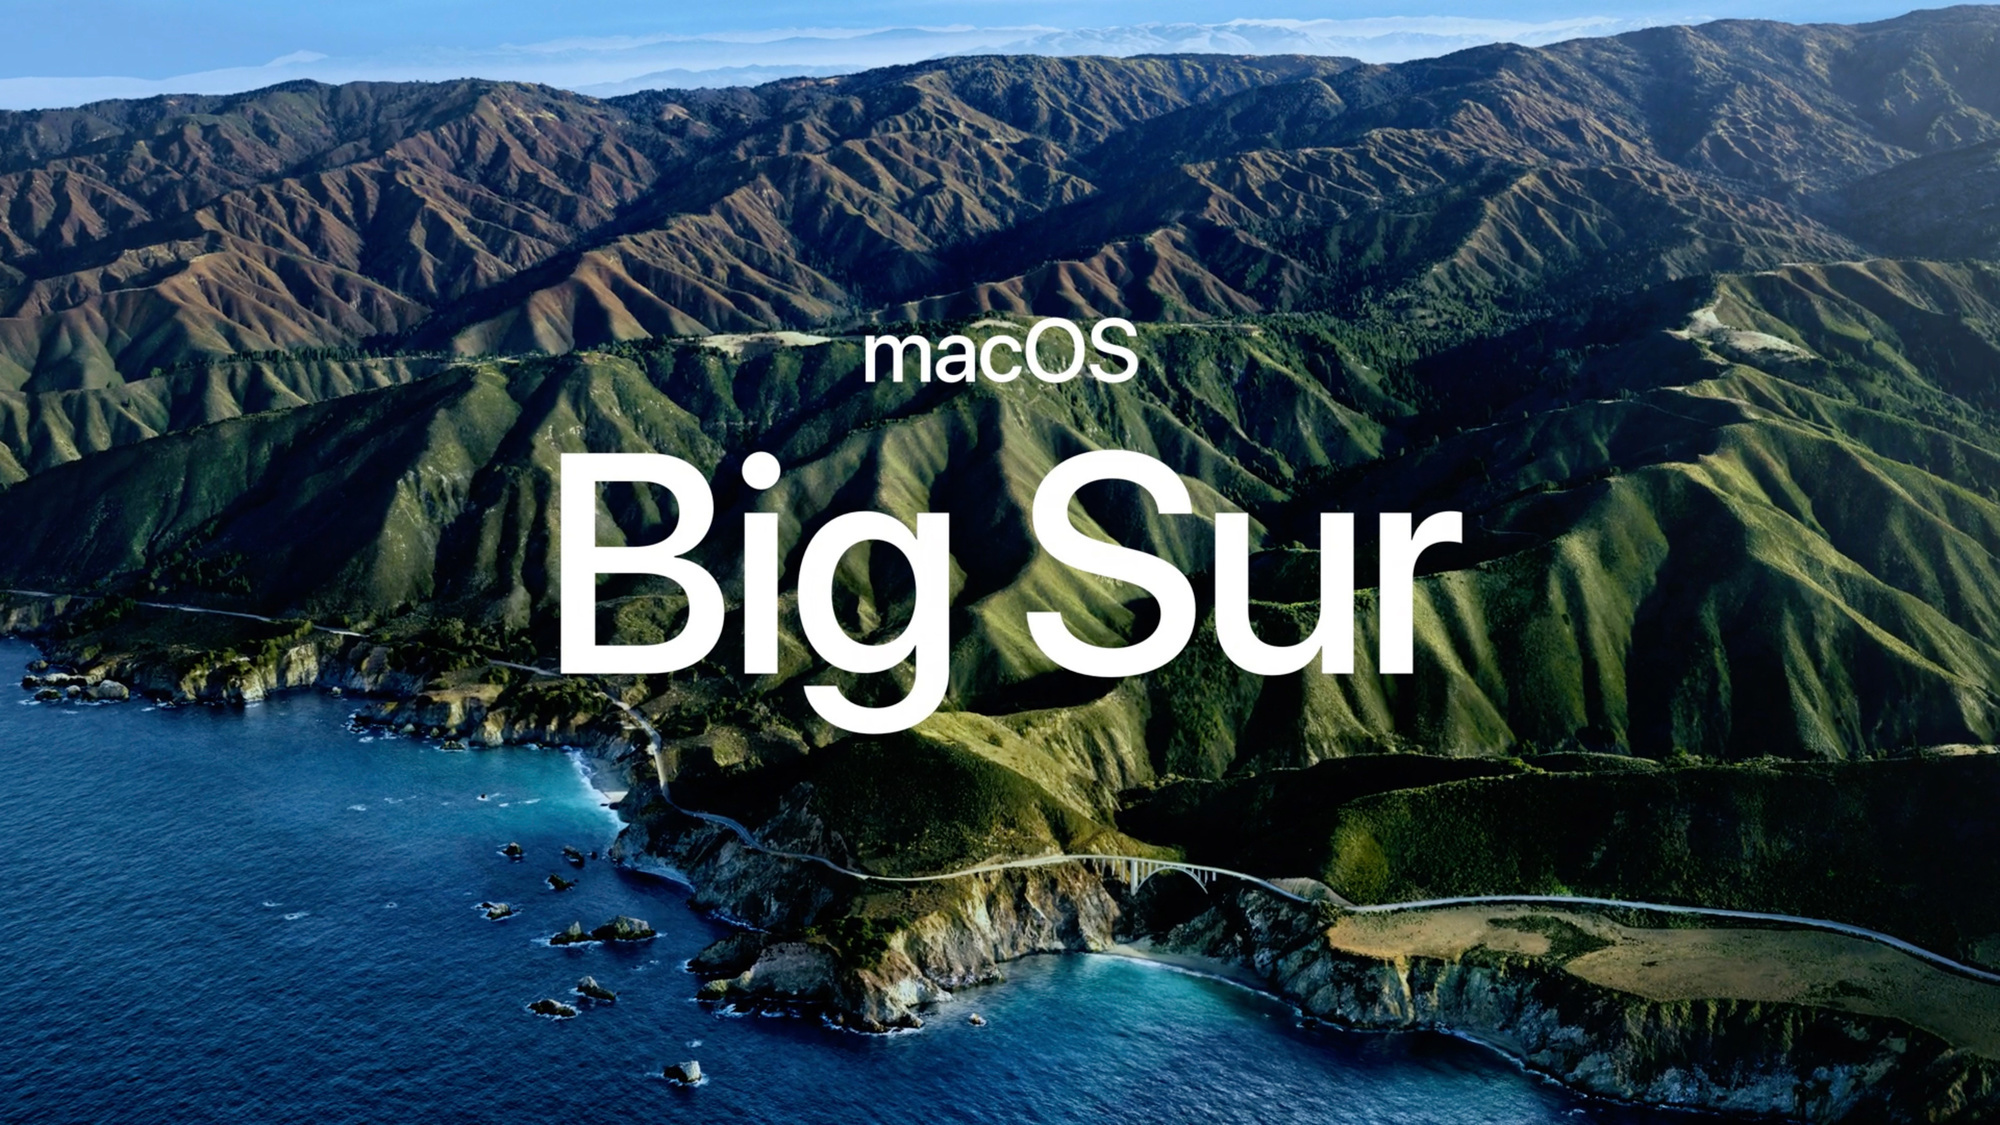 Big Sur, alias macOS 11., Apple